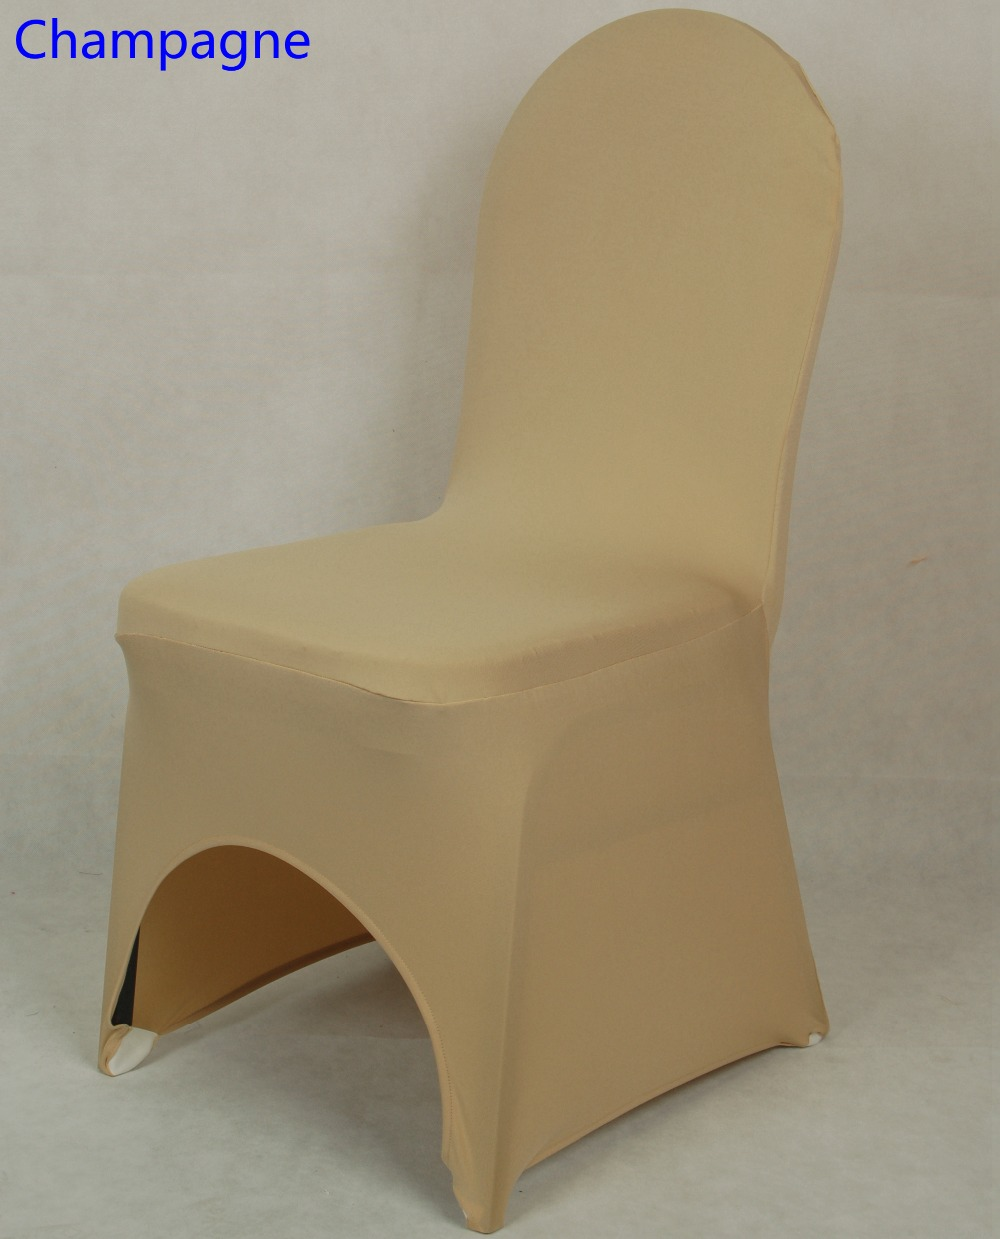 Sensational Us 1 6 Champagne Colour Chair Covers Spandex Chair Covers China Universal Lycra Chair Cover Dining Chair Kitchen Washable Thick In Chair Cover From Machost Co Dining Chair Design Ideas Machostcouk